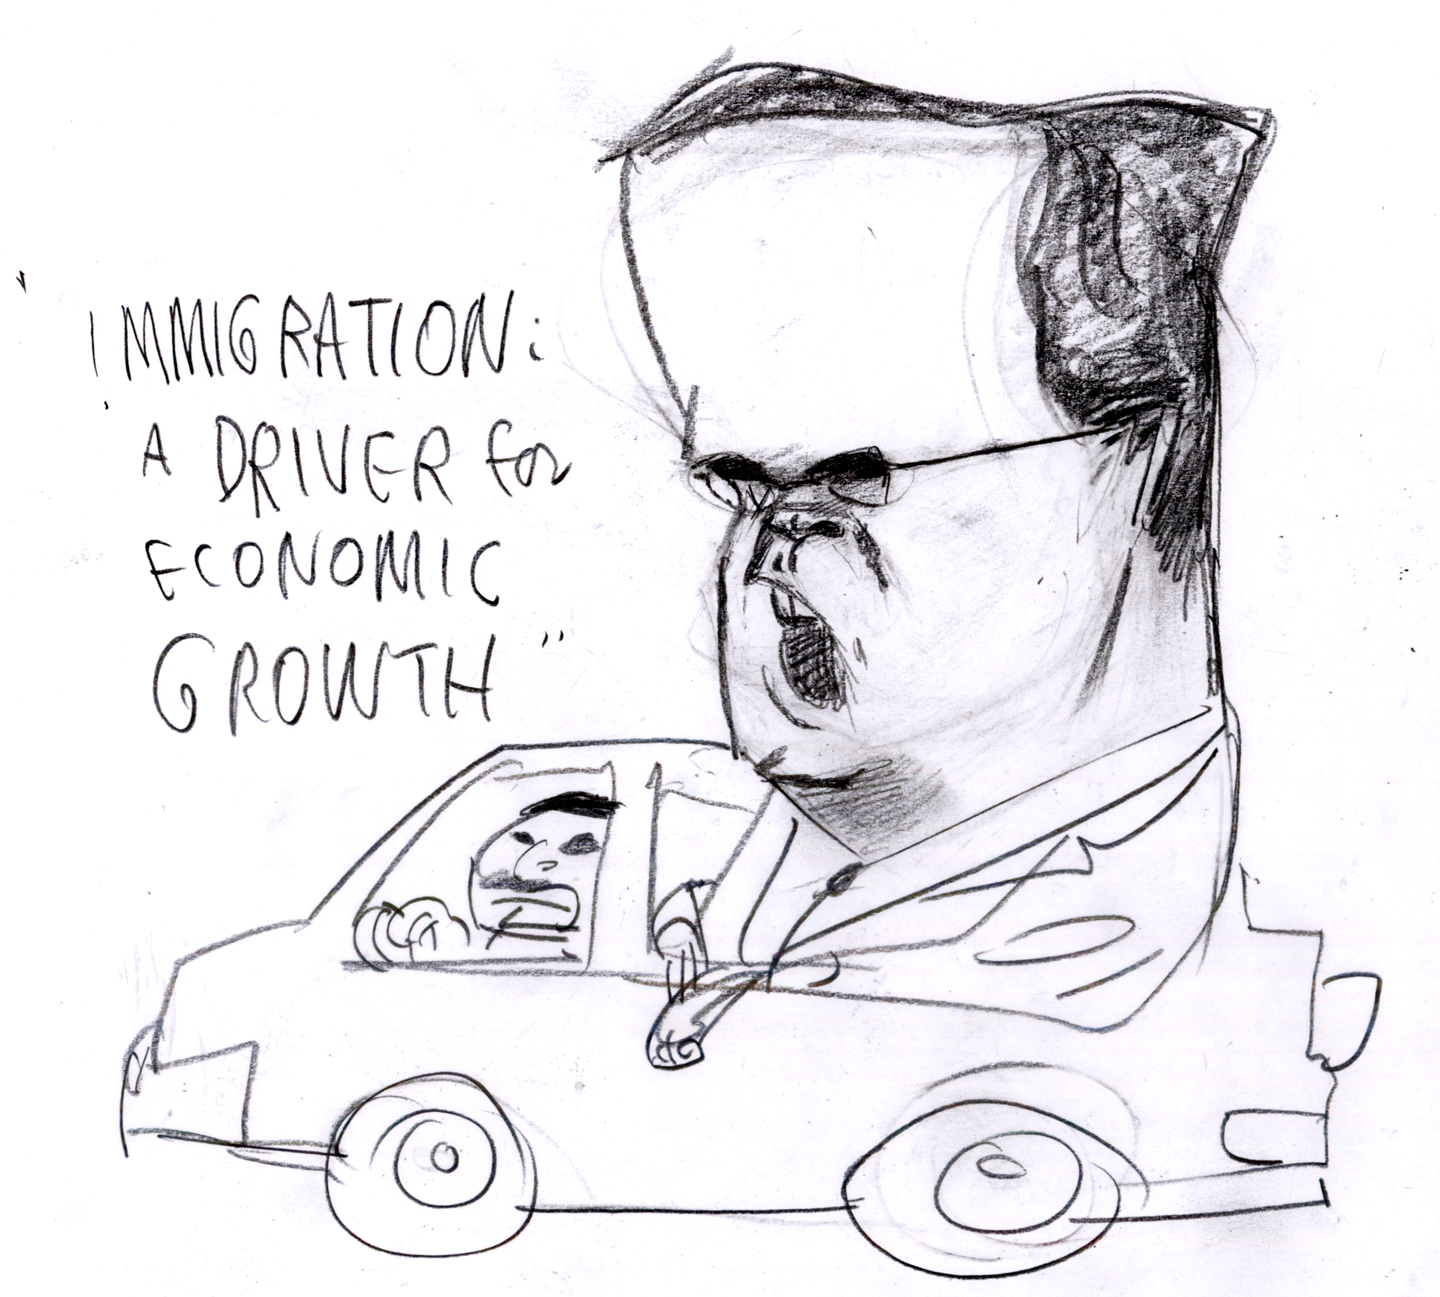 immigration driver